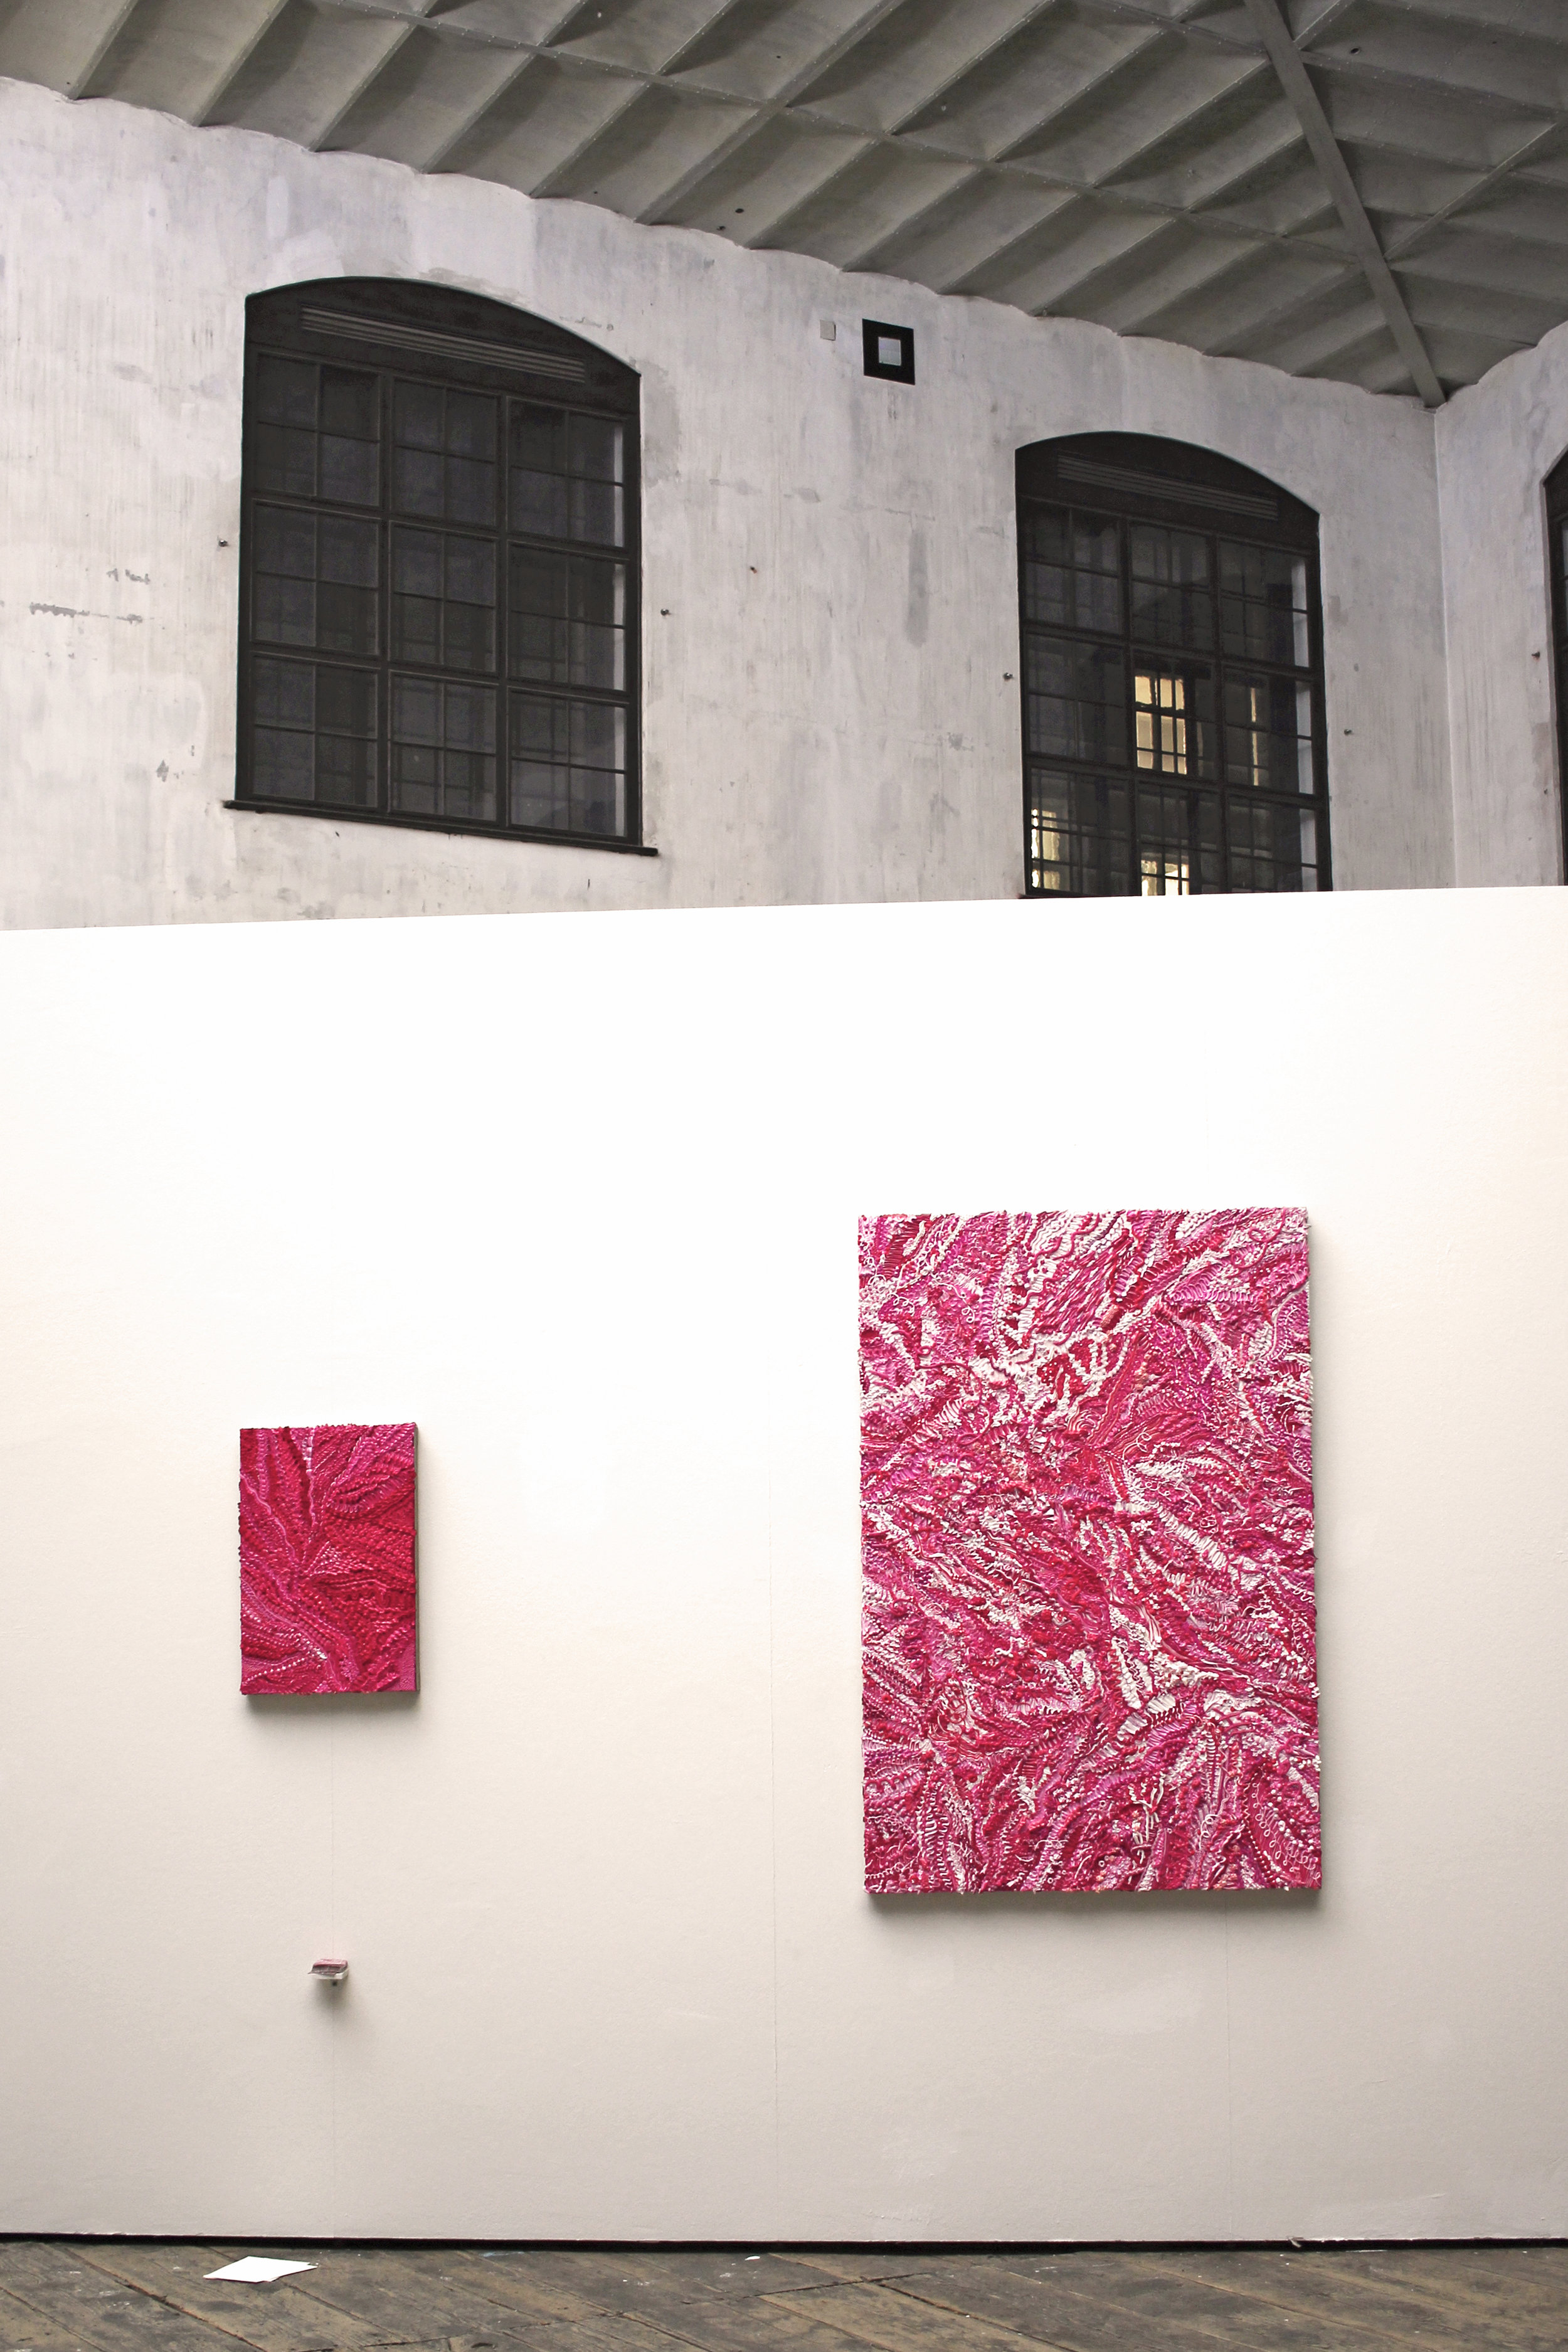 EXHIBITION VIEW, SEMPERDEPOT, January 2019